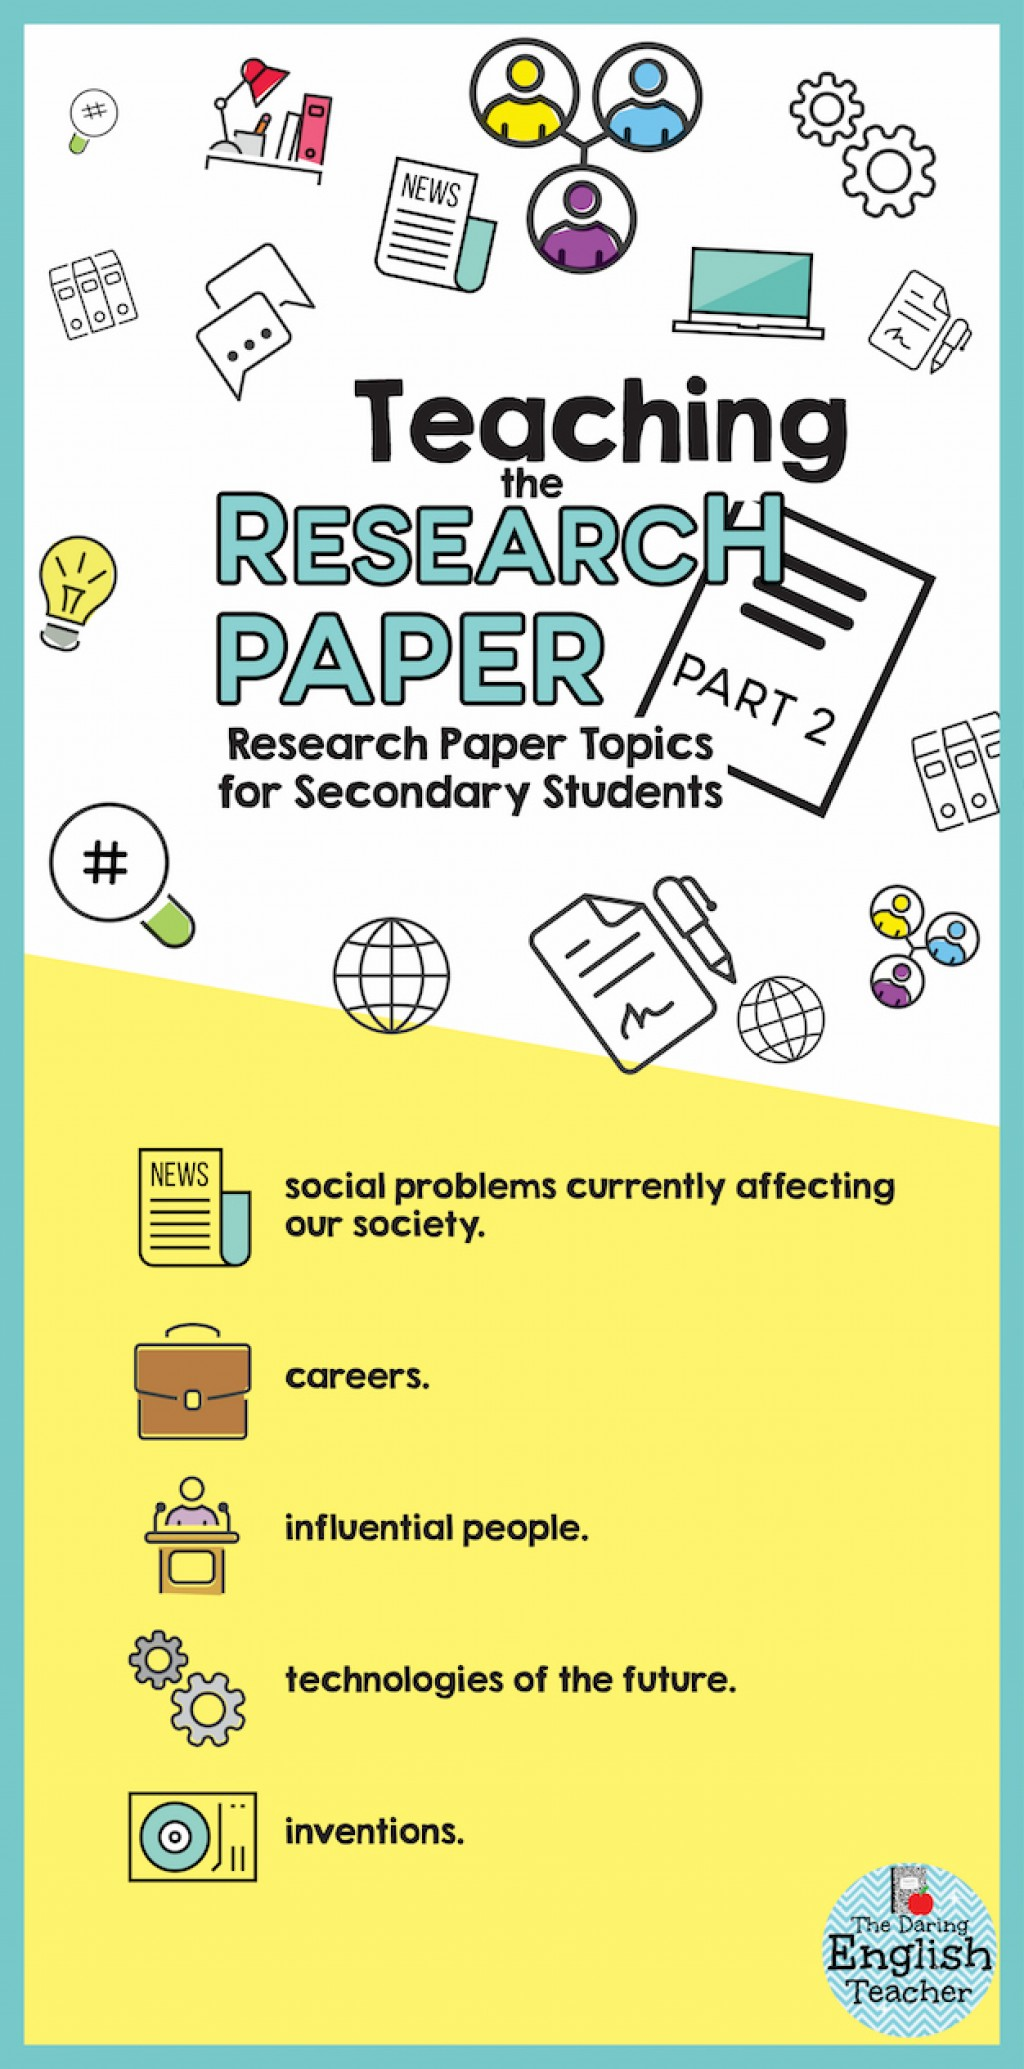 020 Infographic2bp22b2 Research Paper Topic For Unusual A Topics In Psychology List Of On Education Large